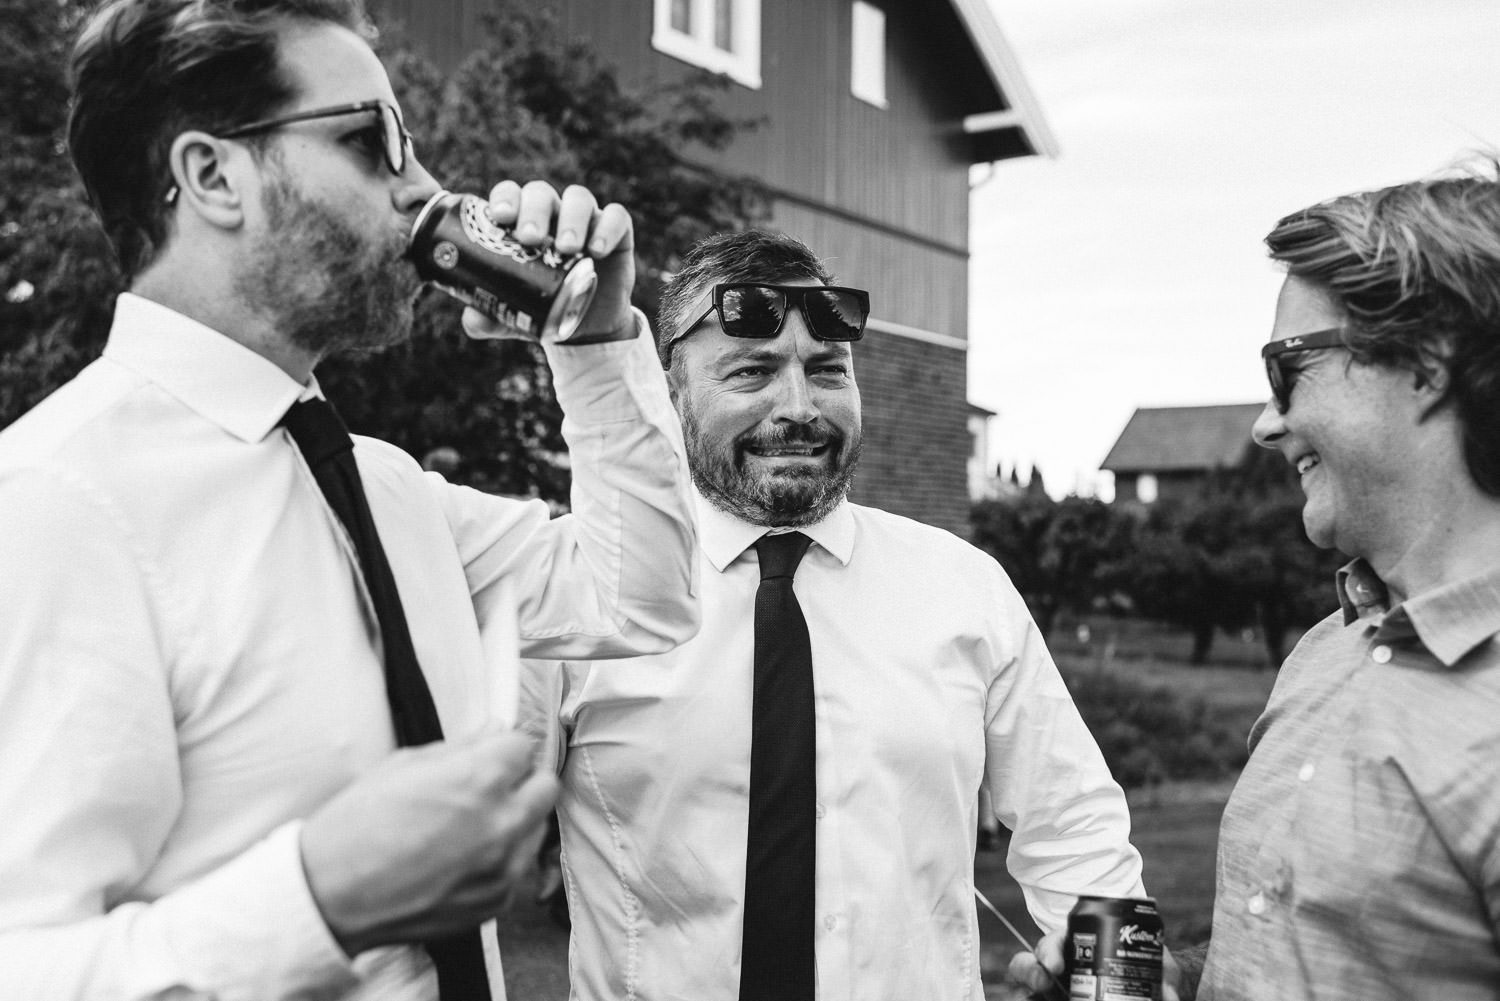 Wedding reception drinks in Norwegian Barn Wedding by norway destination wedding photographer the shannons photography